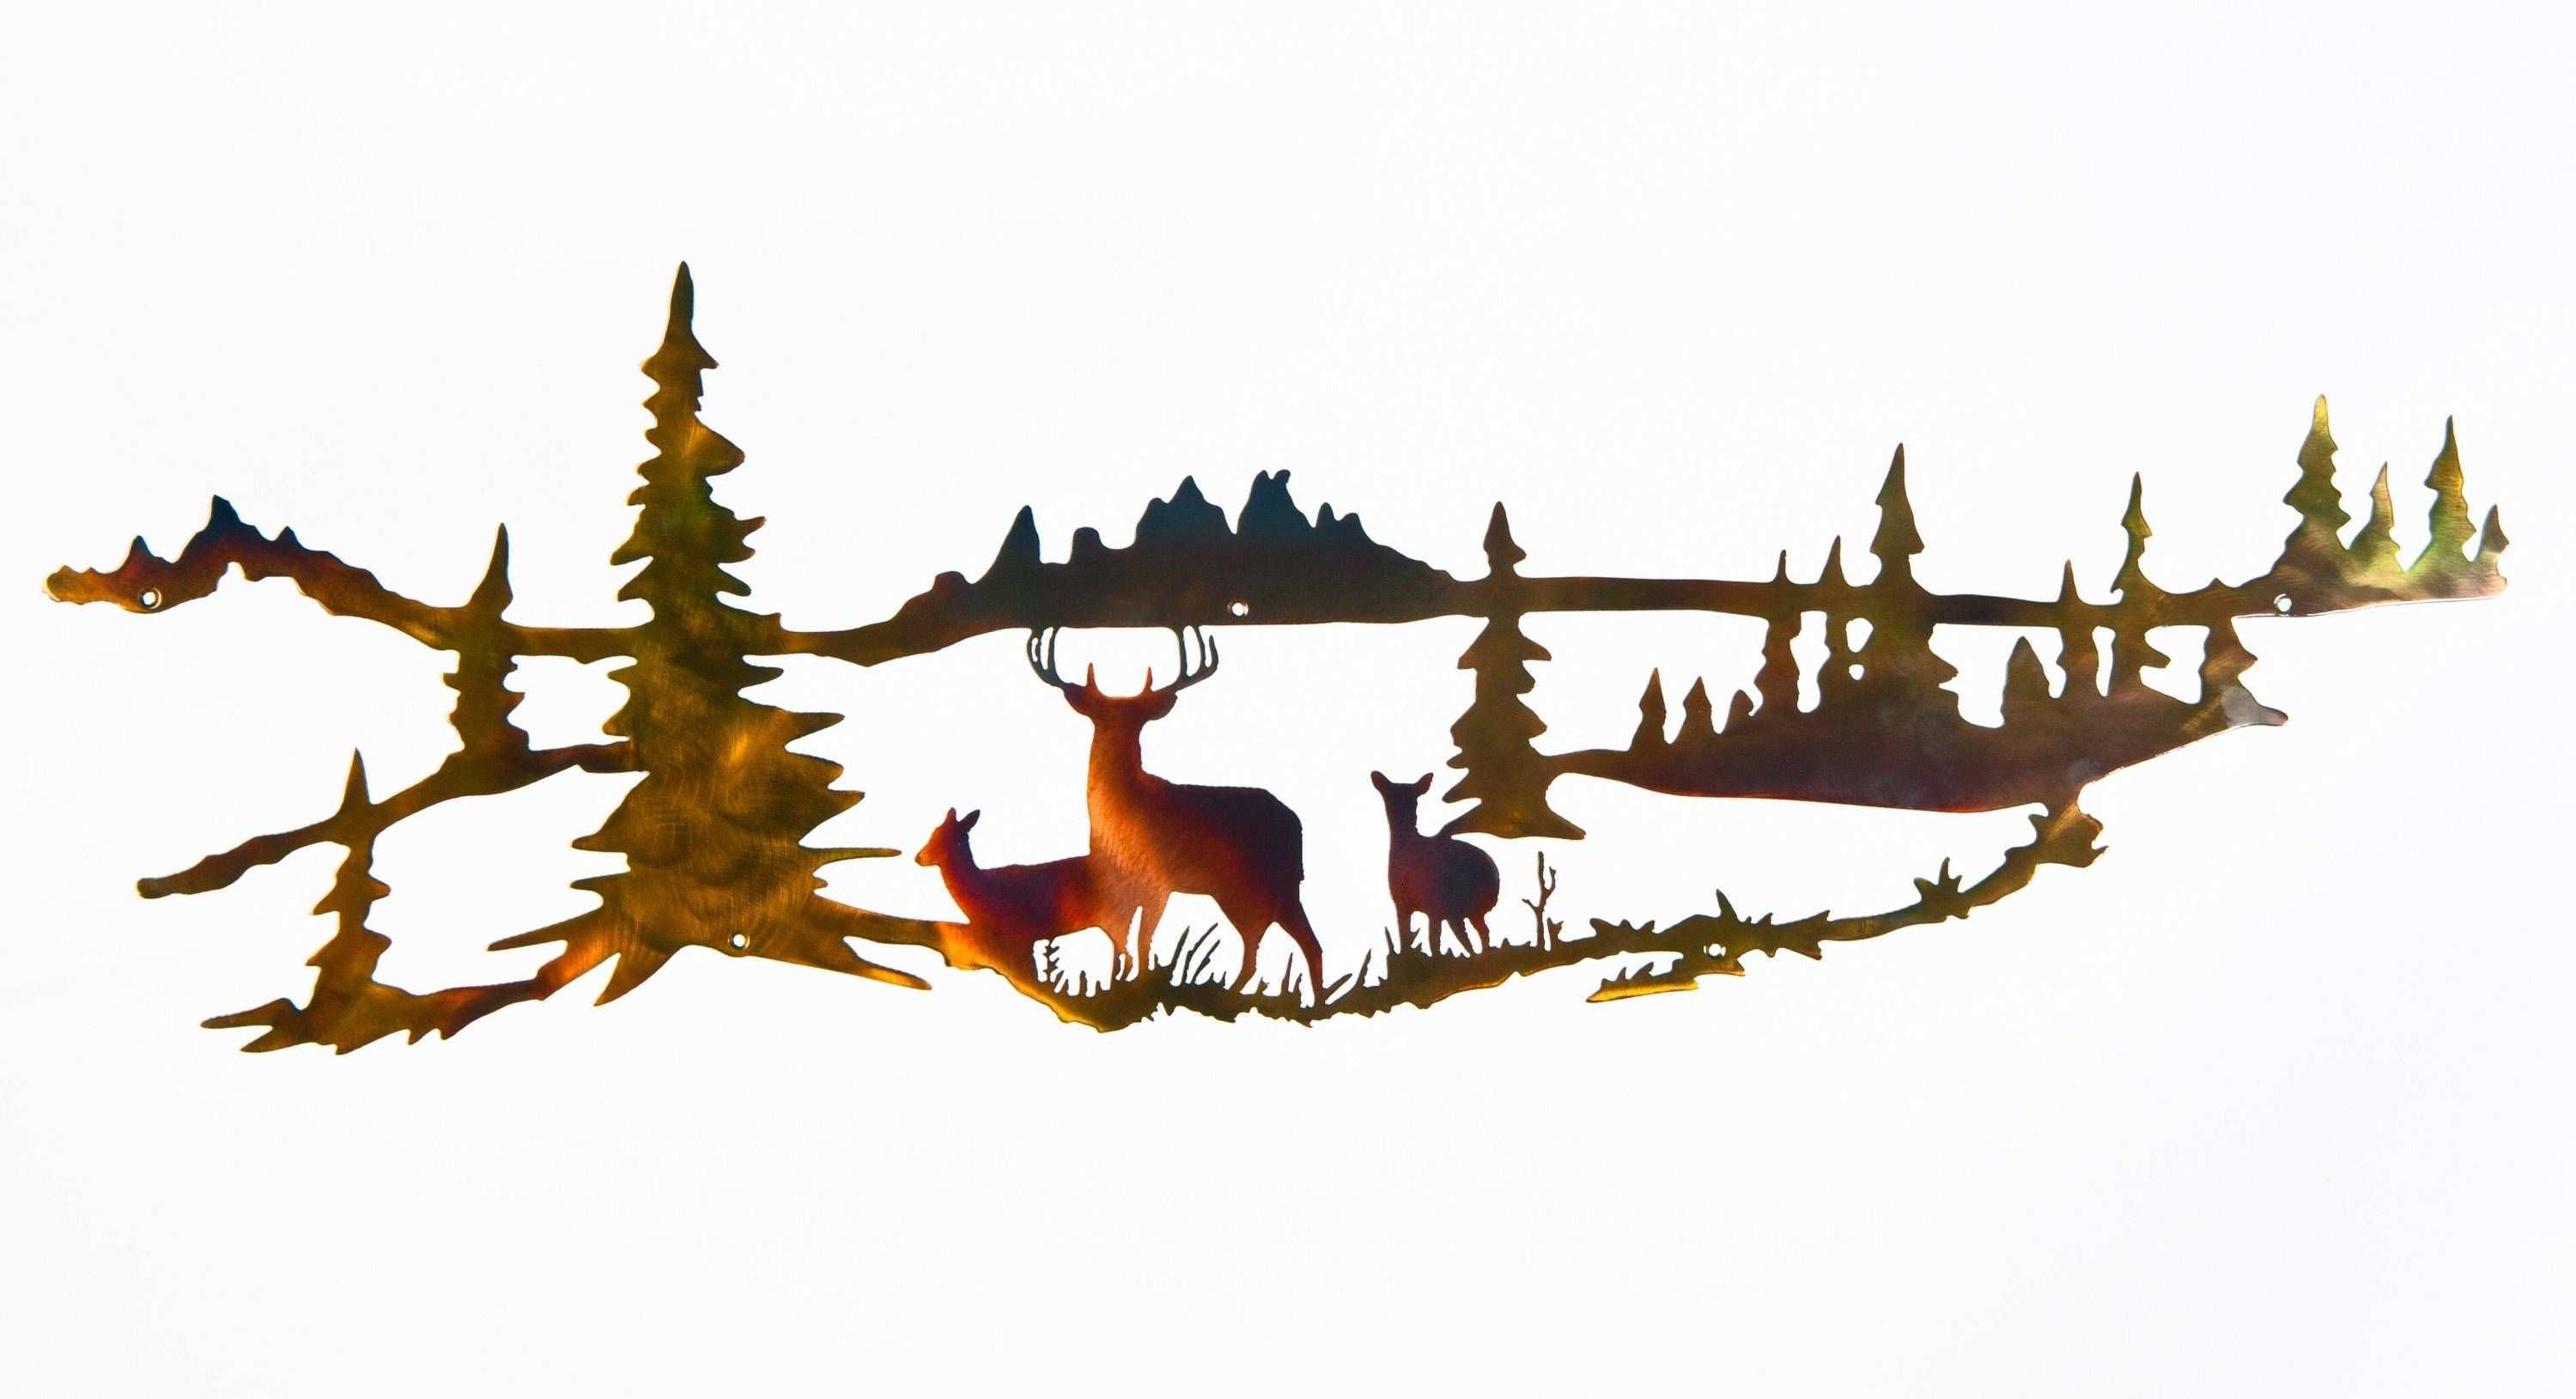 This metal art piece depicts a whitetail buck and two doe deer with